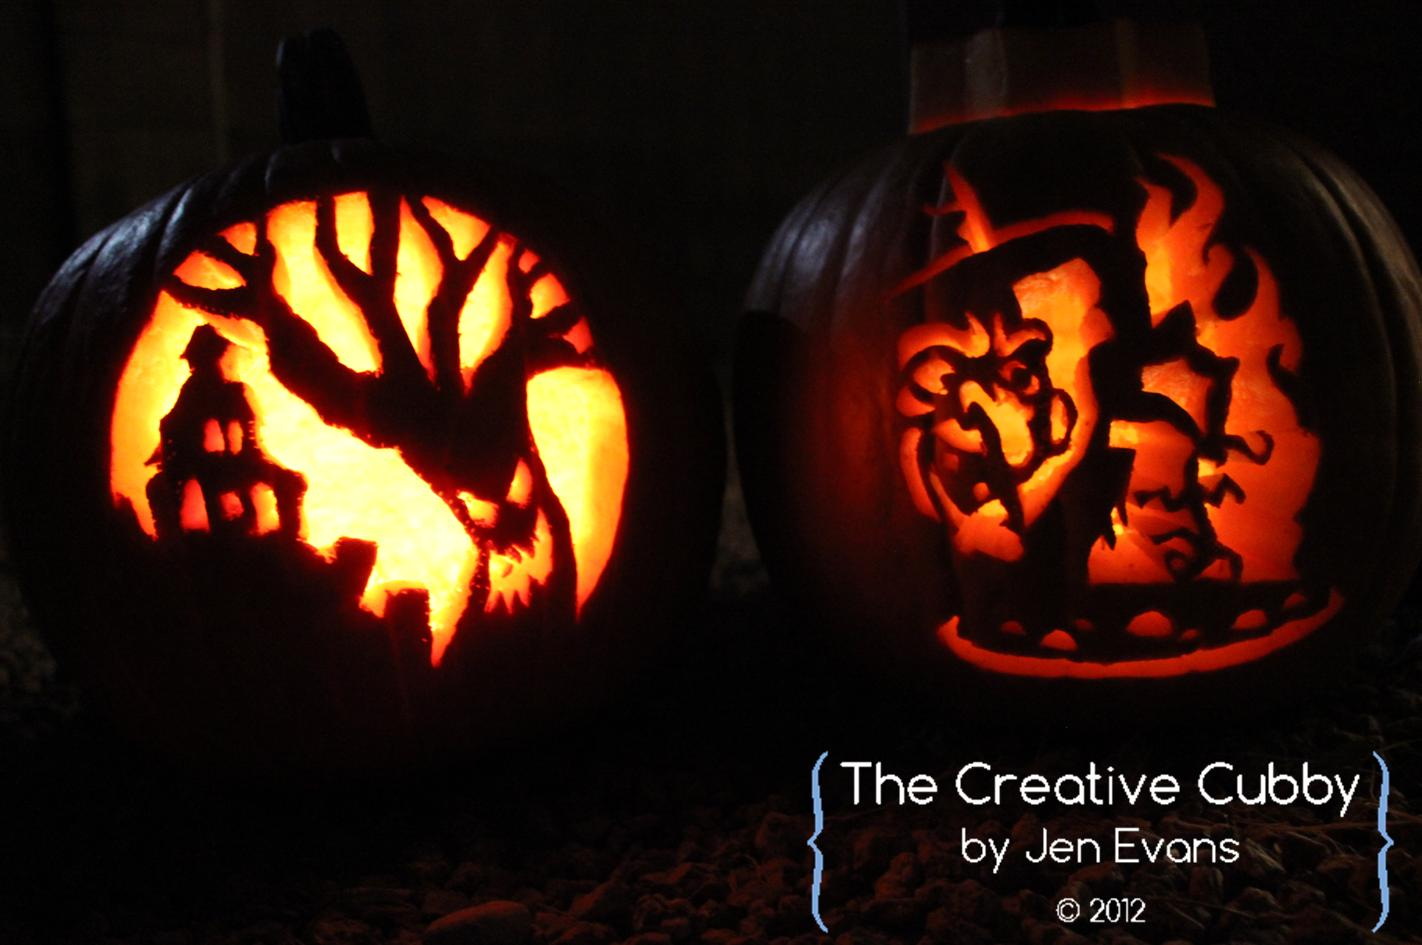 The creative cubby evans pumpkin carving